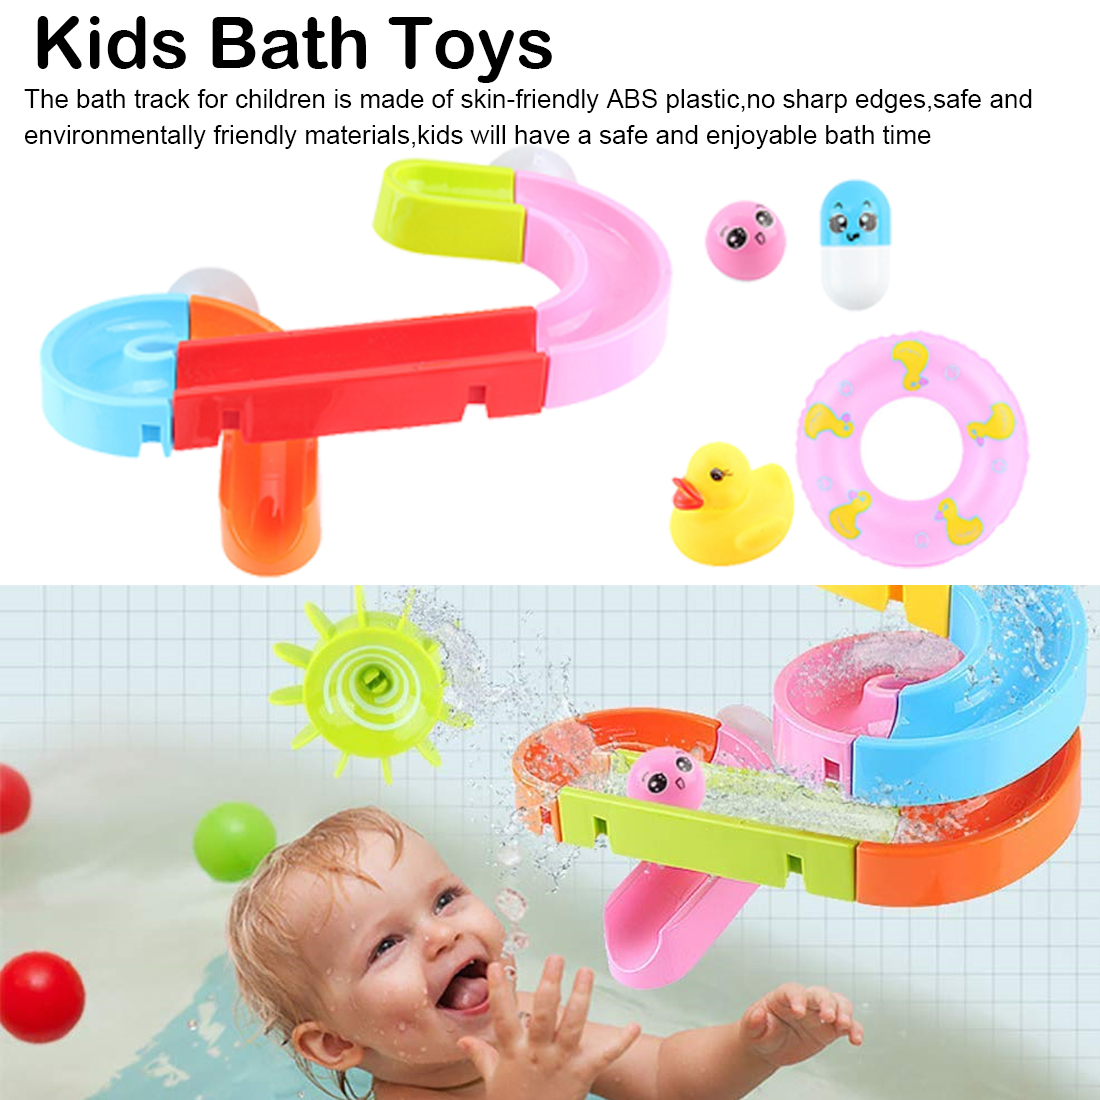 Creative Assembling Water Play Toys Set Suction Cup Orbits Baby Bath Toys Shower Games Swimming Pool Waterfall Toys Water Toy image